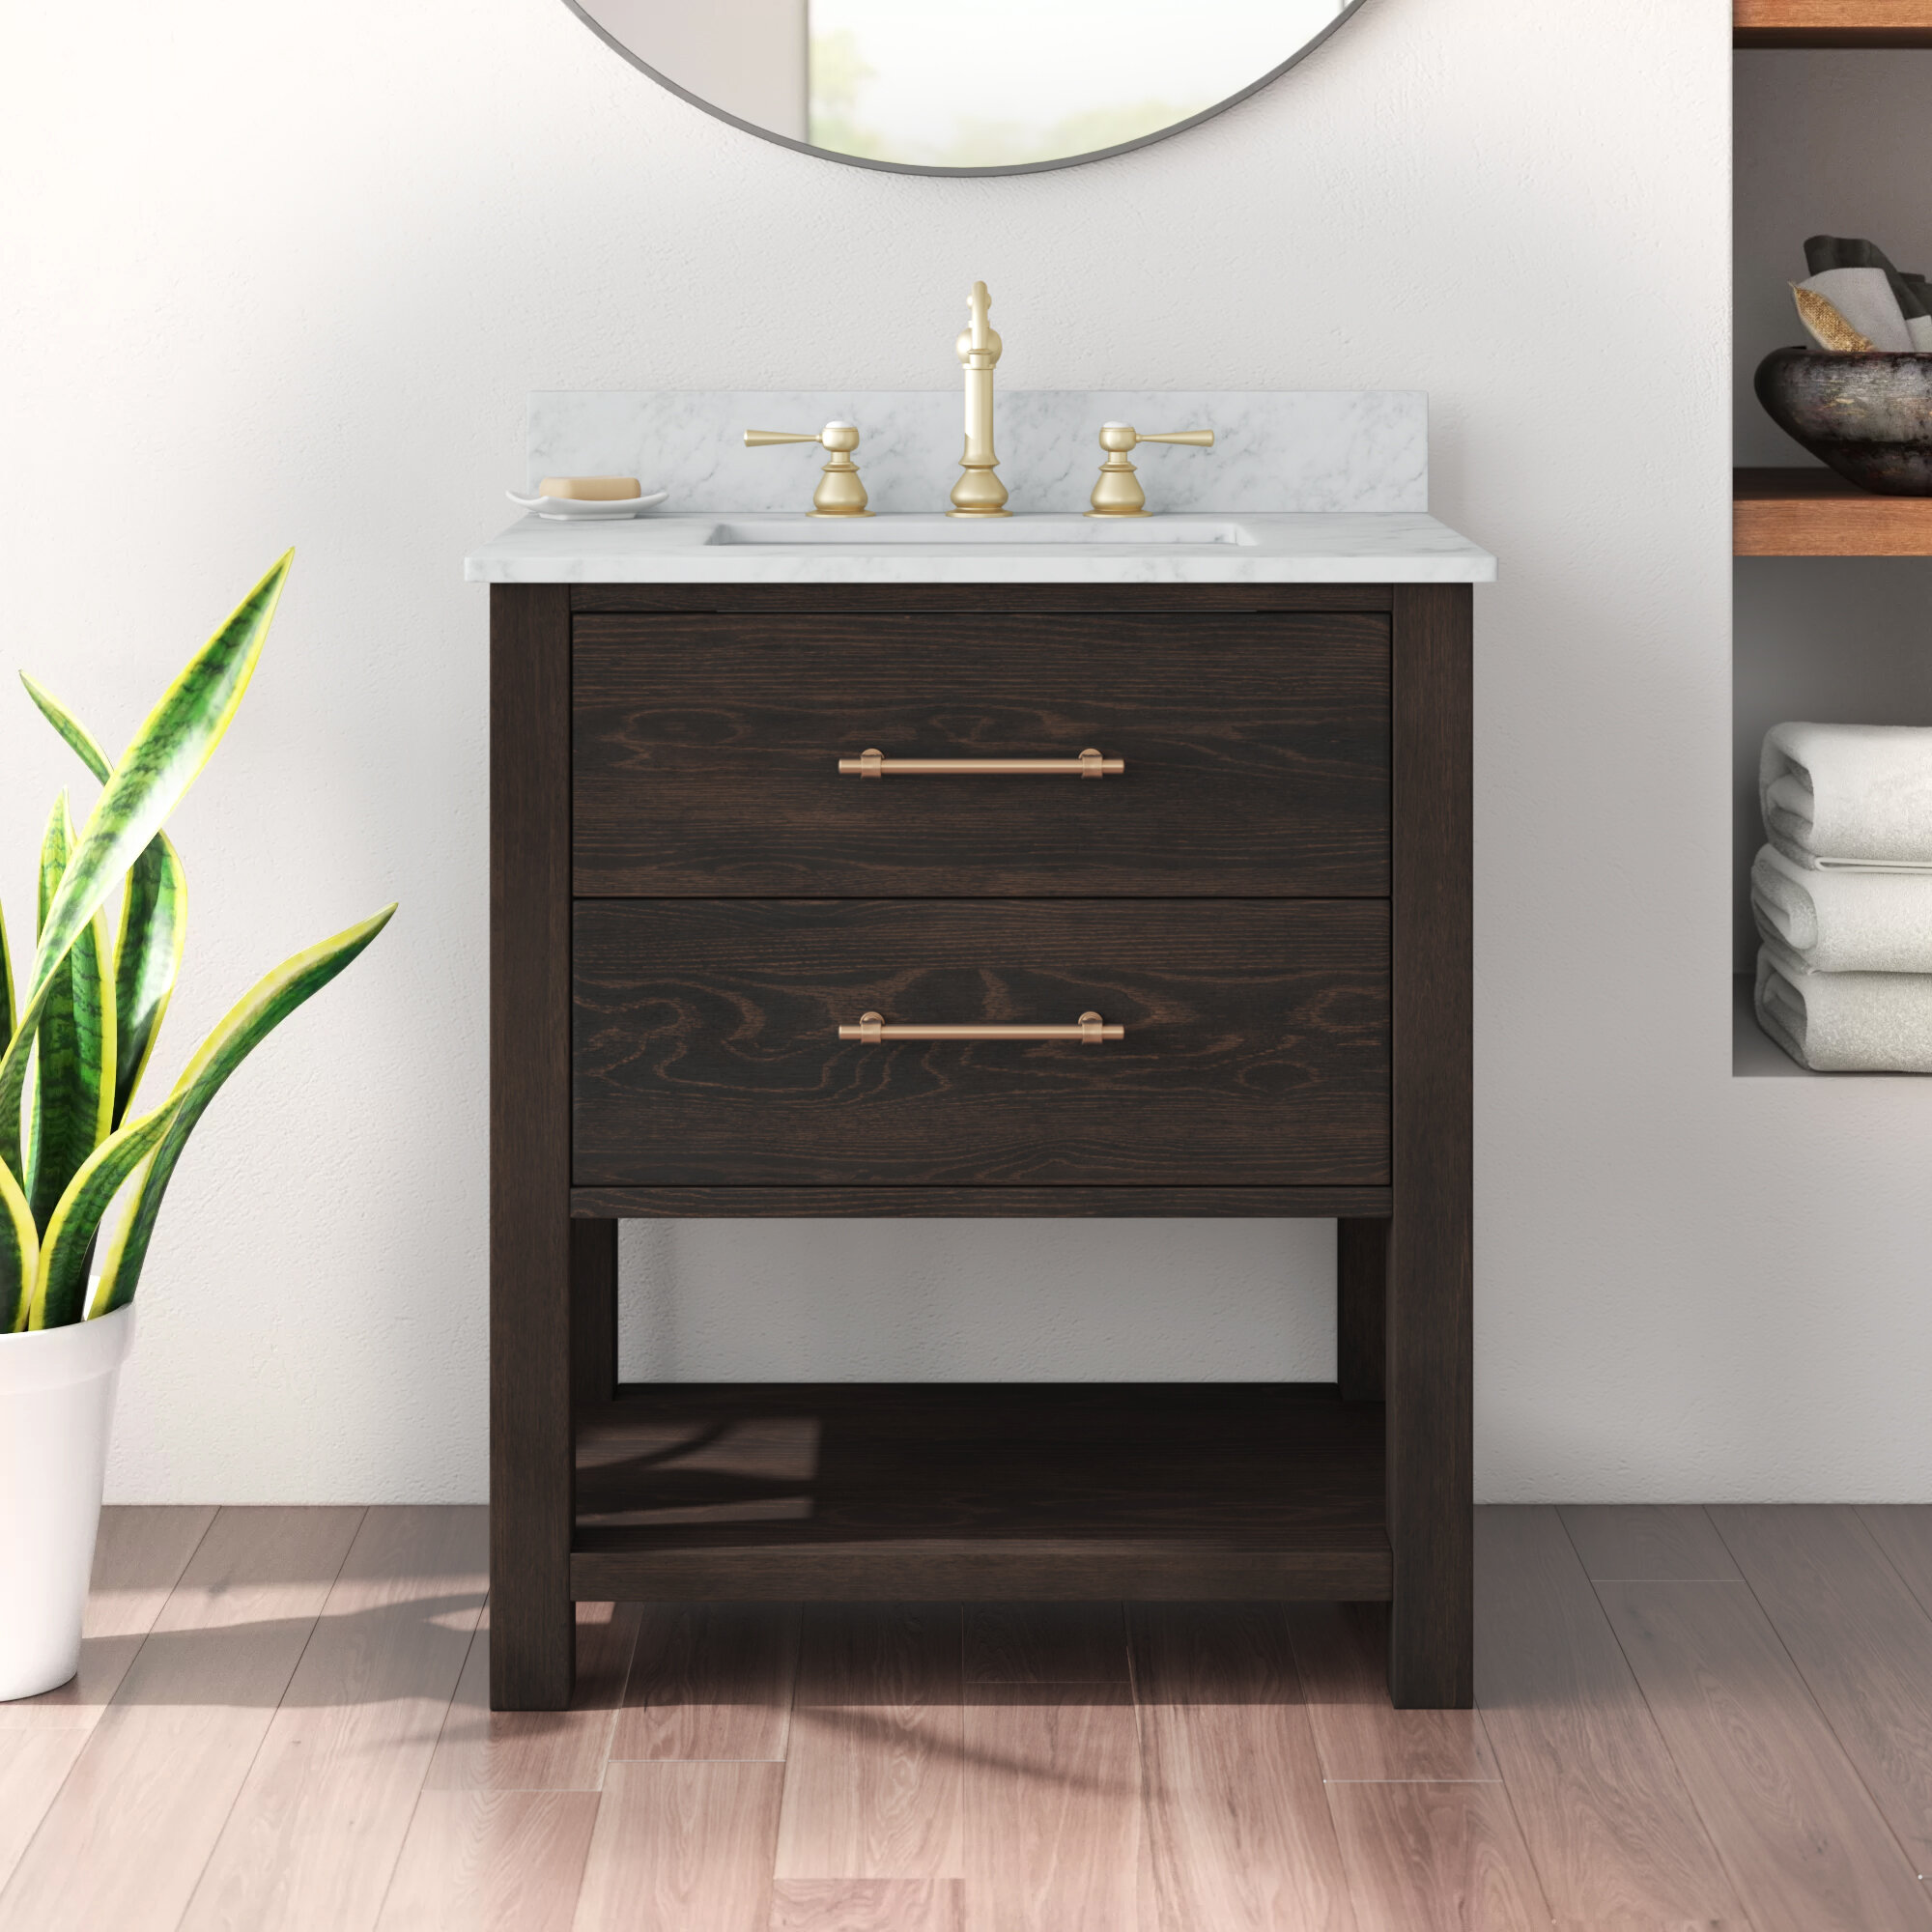 Burchette Fouke 30 Single Bathroom Vanity Set Reviews Allmodern